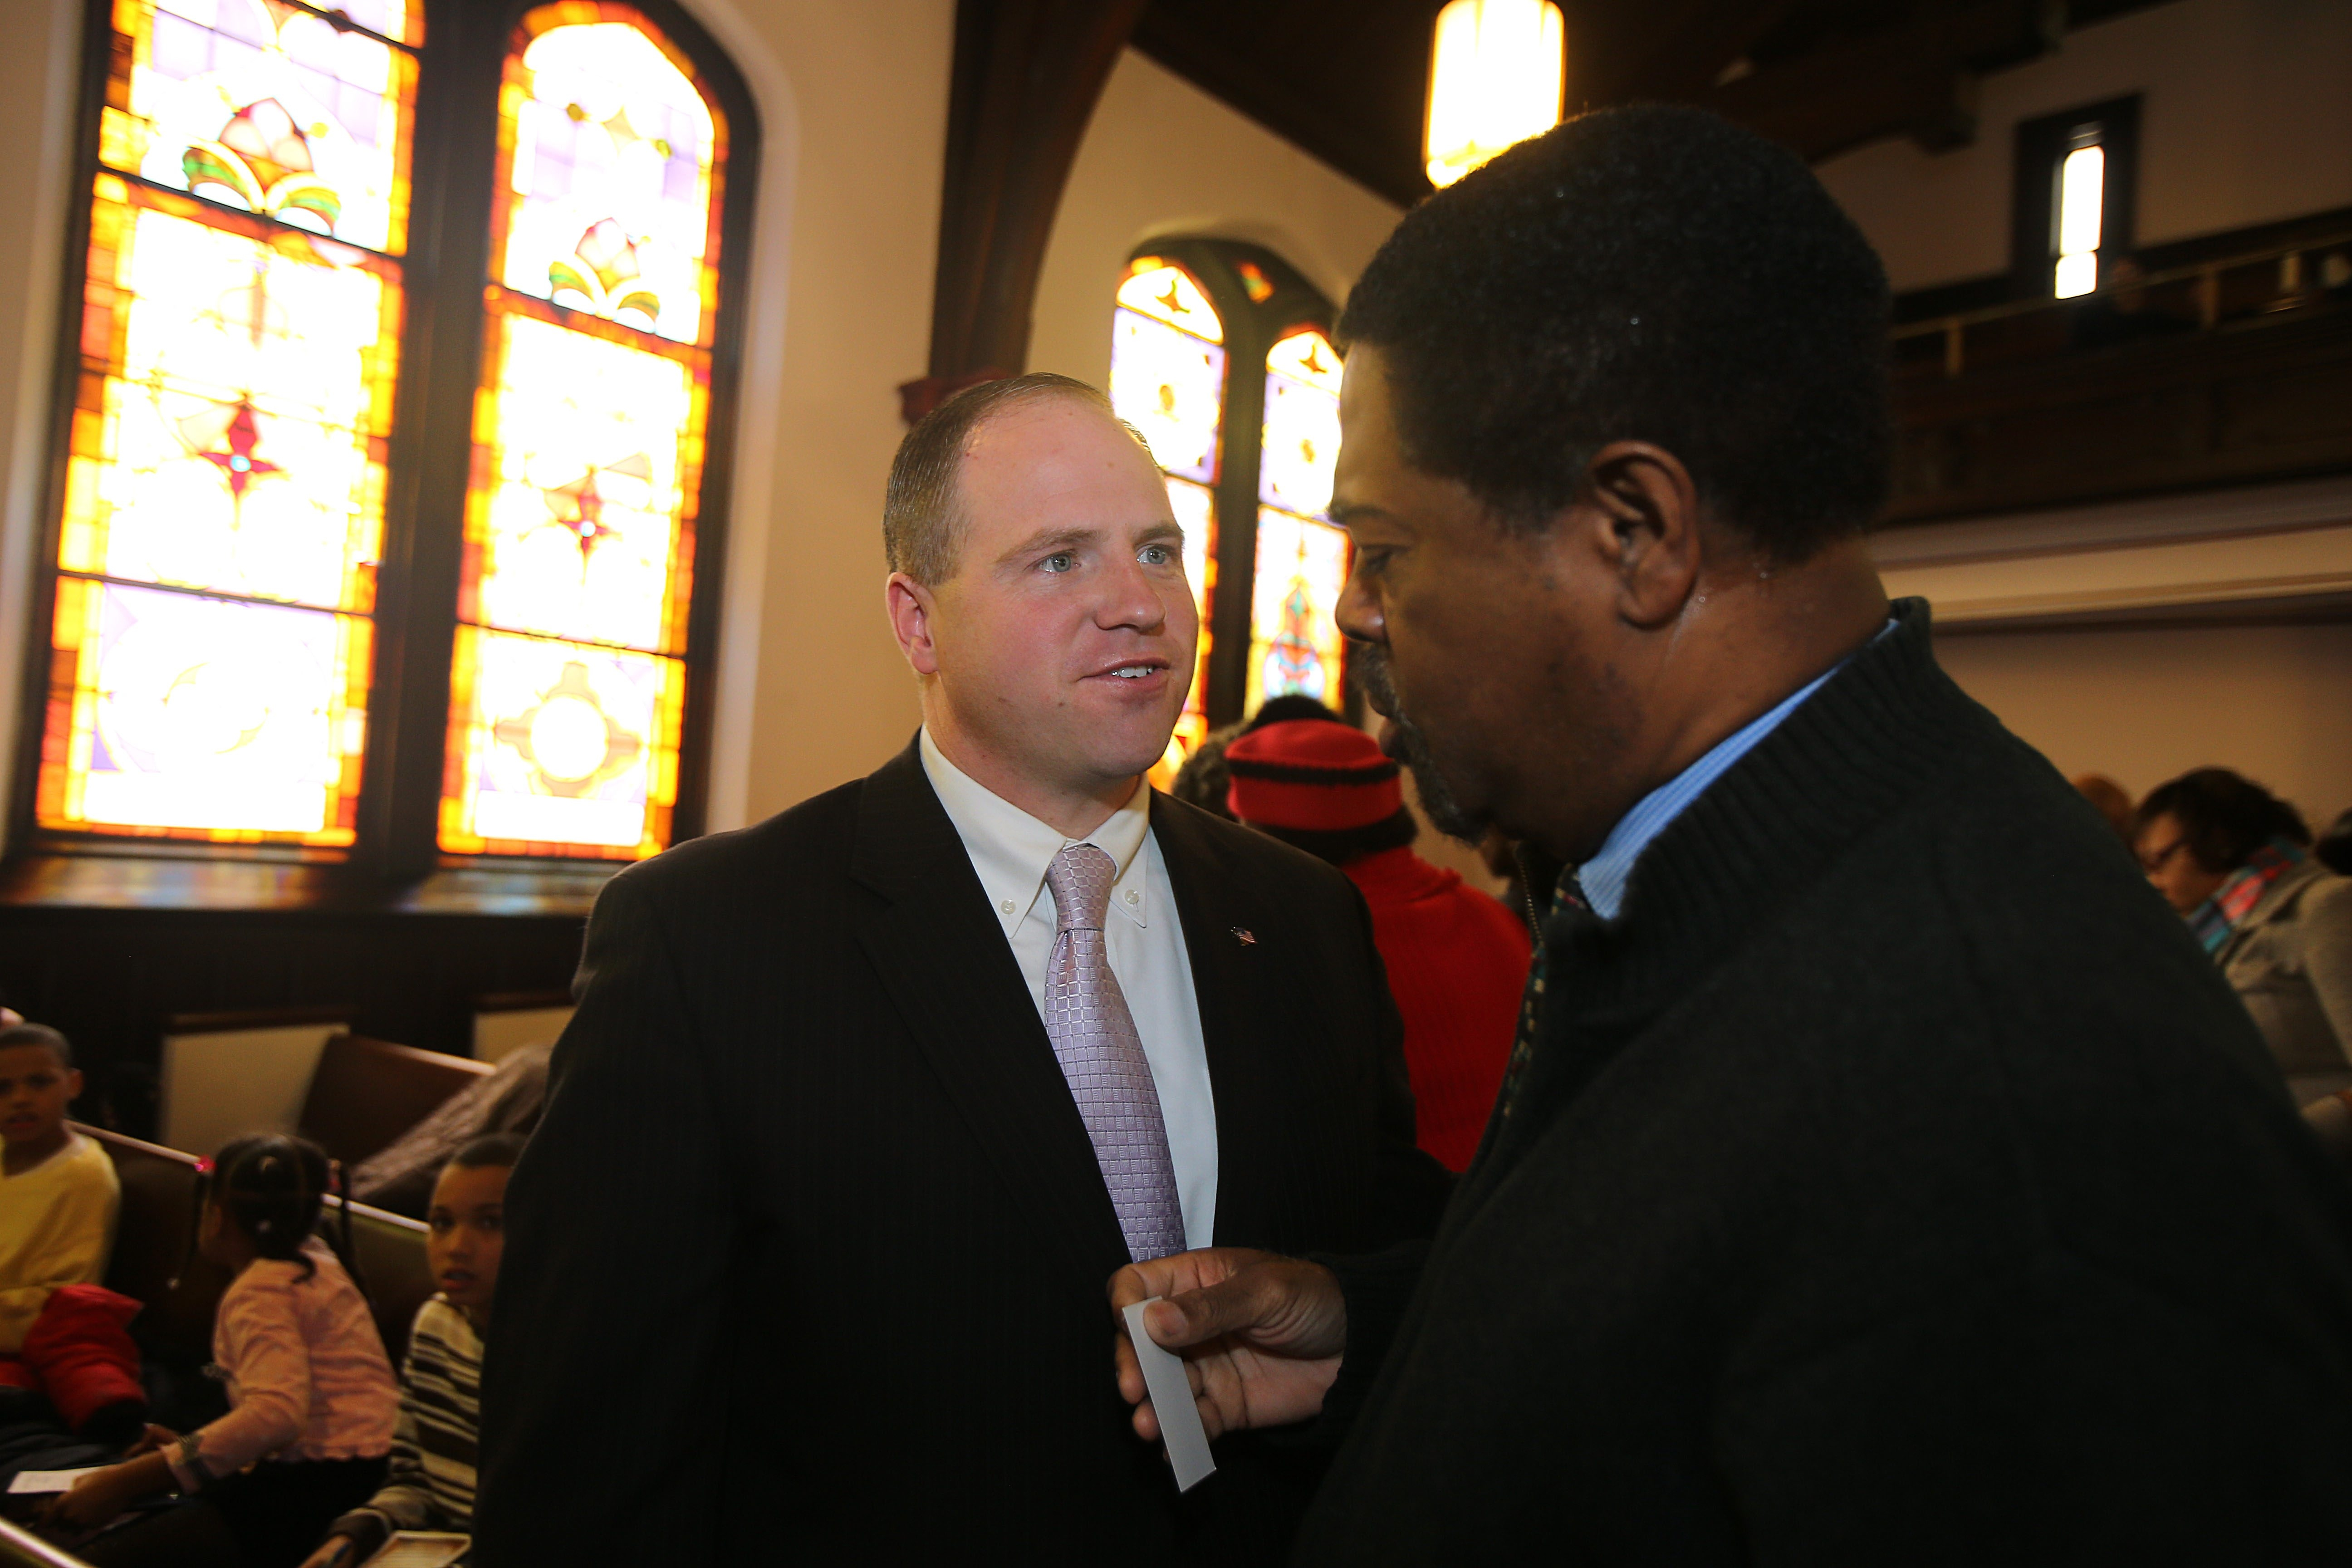 State Sen. Timothy Kennedy, speaking with Randy Edwards, foreground, as well as worshipping in a pew, appears at Bethel AME Church as African-American votes are key in re-election race with Betty Jean Grant; he outdid her in '12 primary by margin of 139.